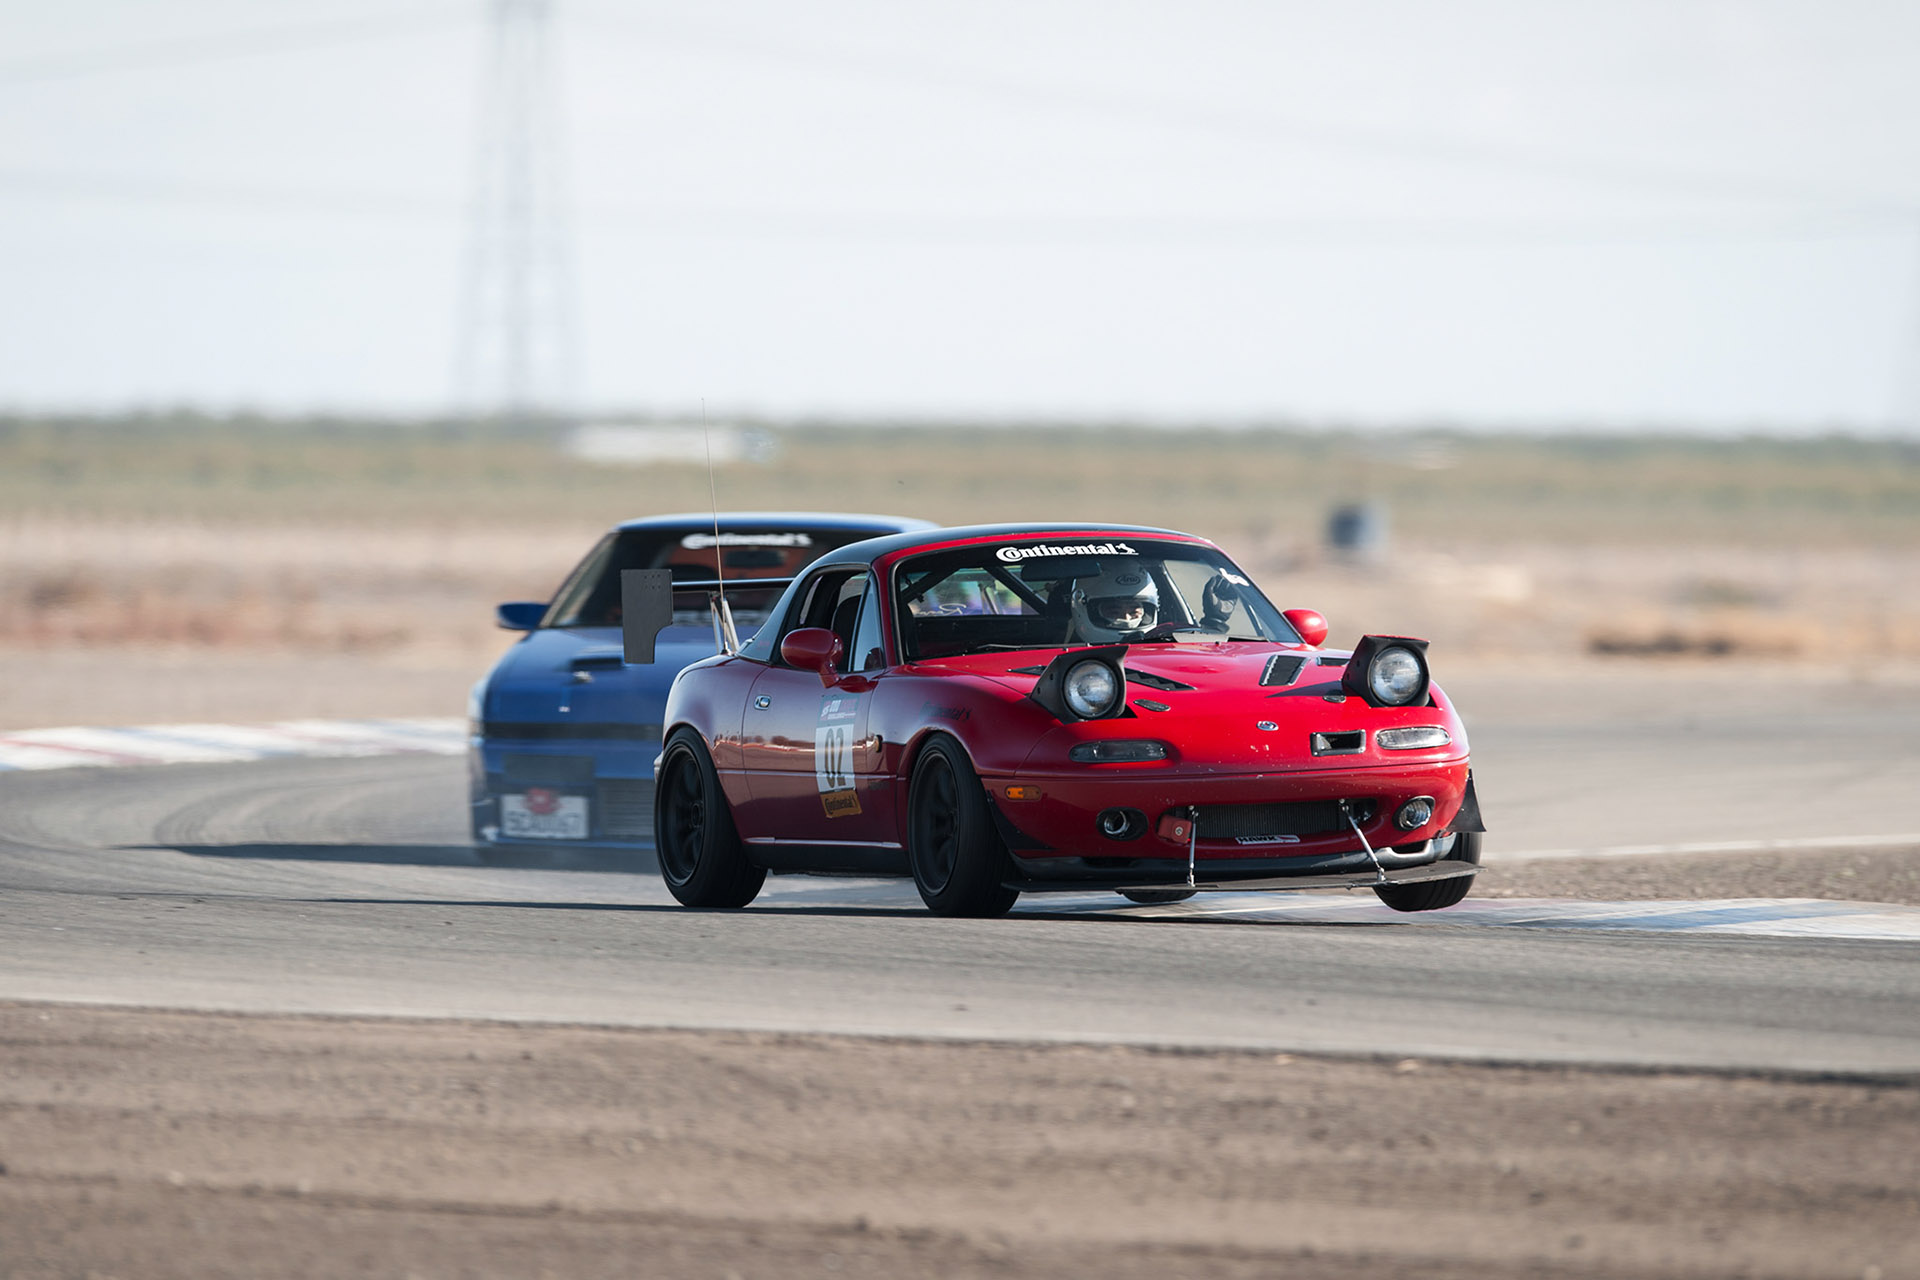 Luke Munnell motorsports photography J30 V6 swapped NA6 Mazda Miata racing in Super Street magazine Odd Swaps Challenge at Buttonwillow Raceway